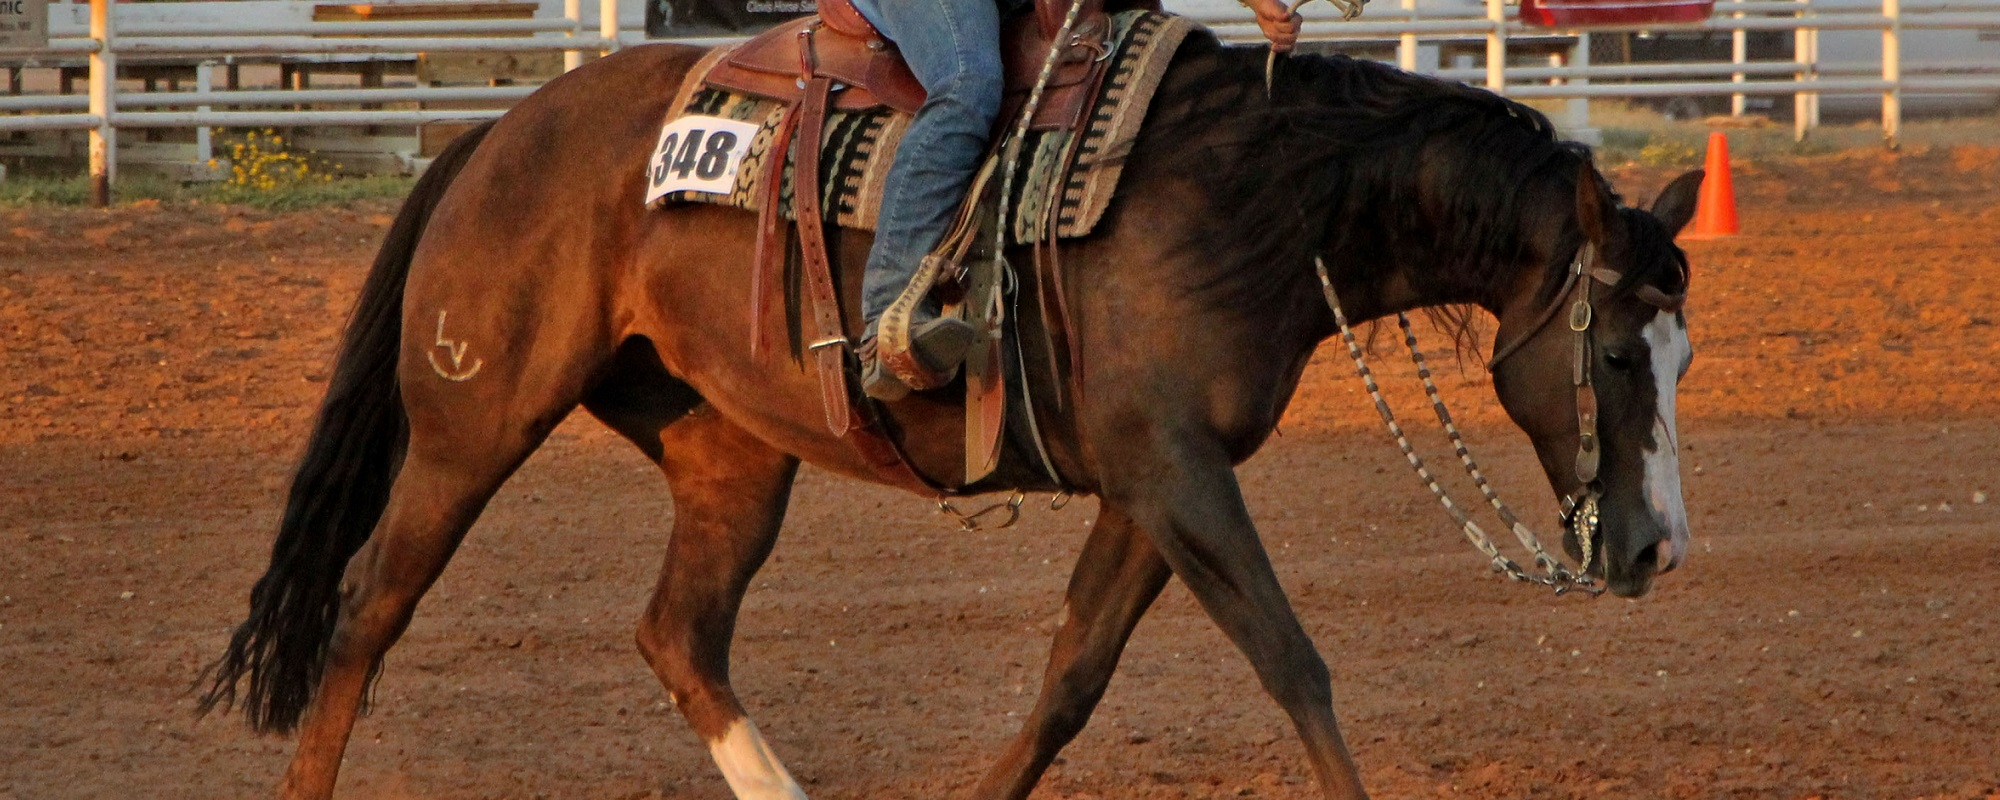 Australian Ranch Horse Is A National Body Who Promotes Ranch Horses